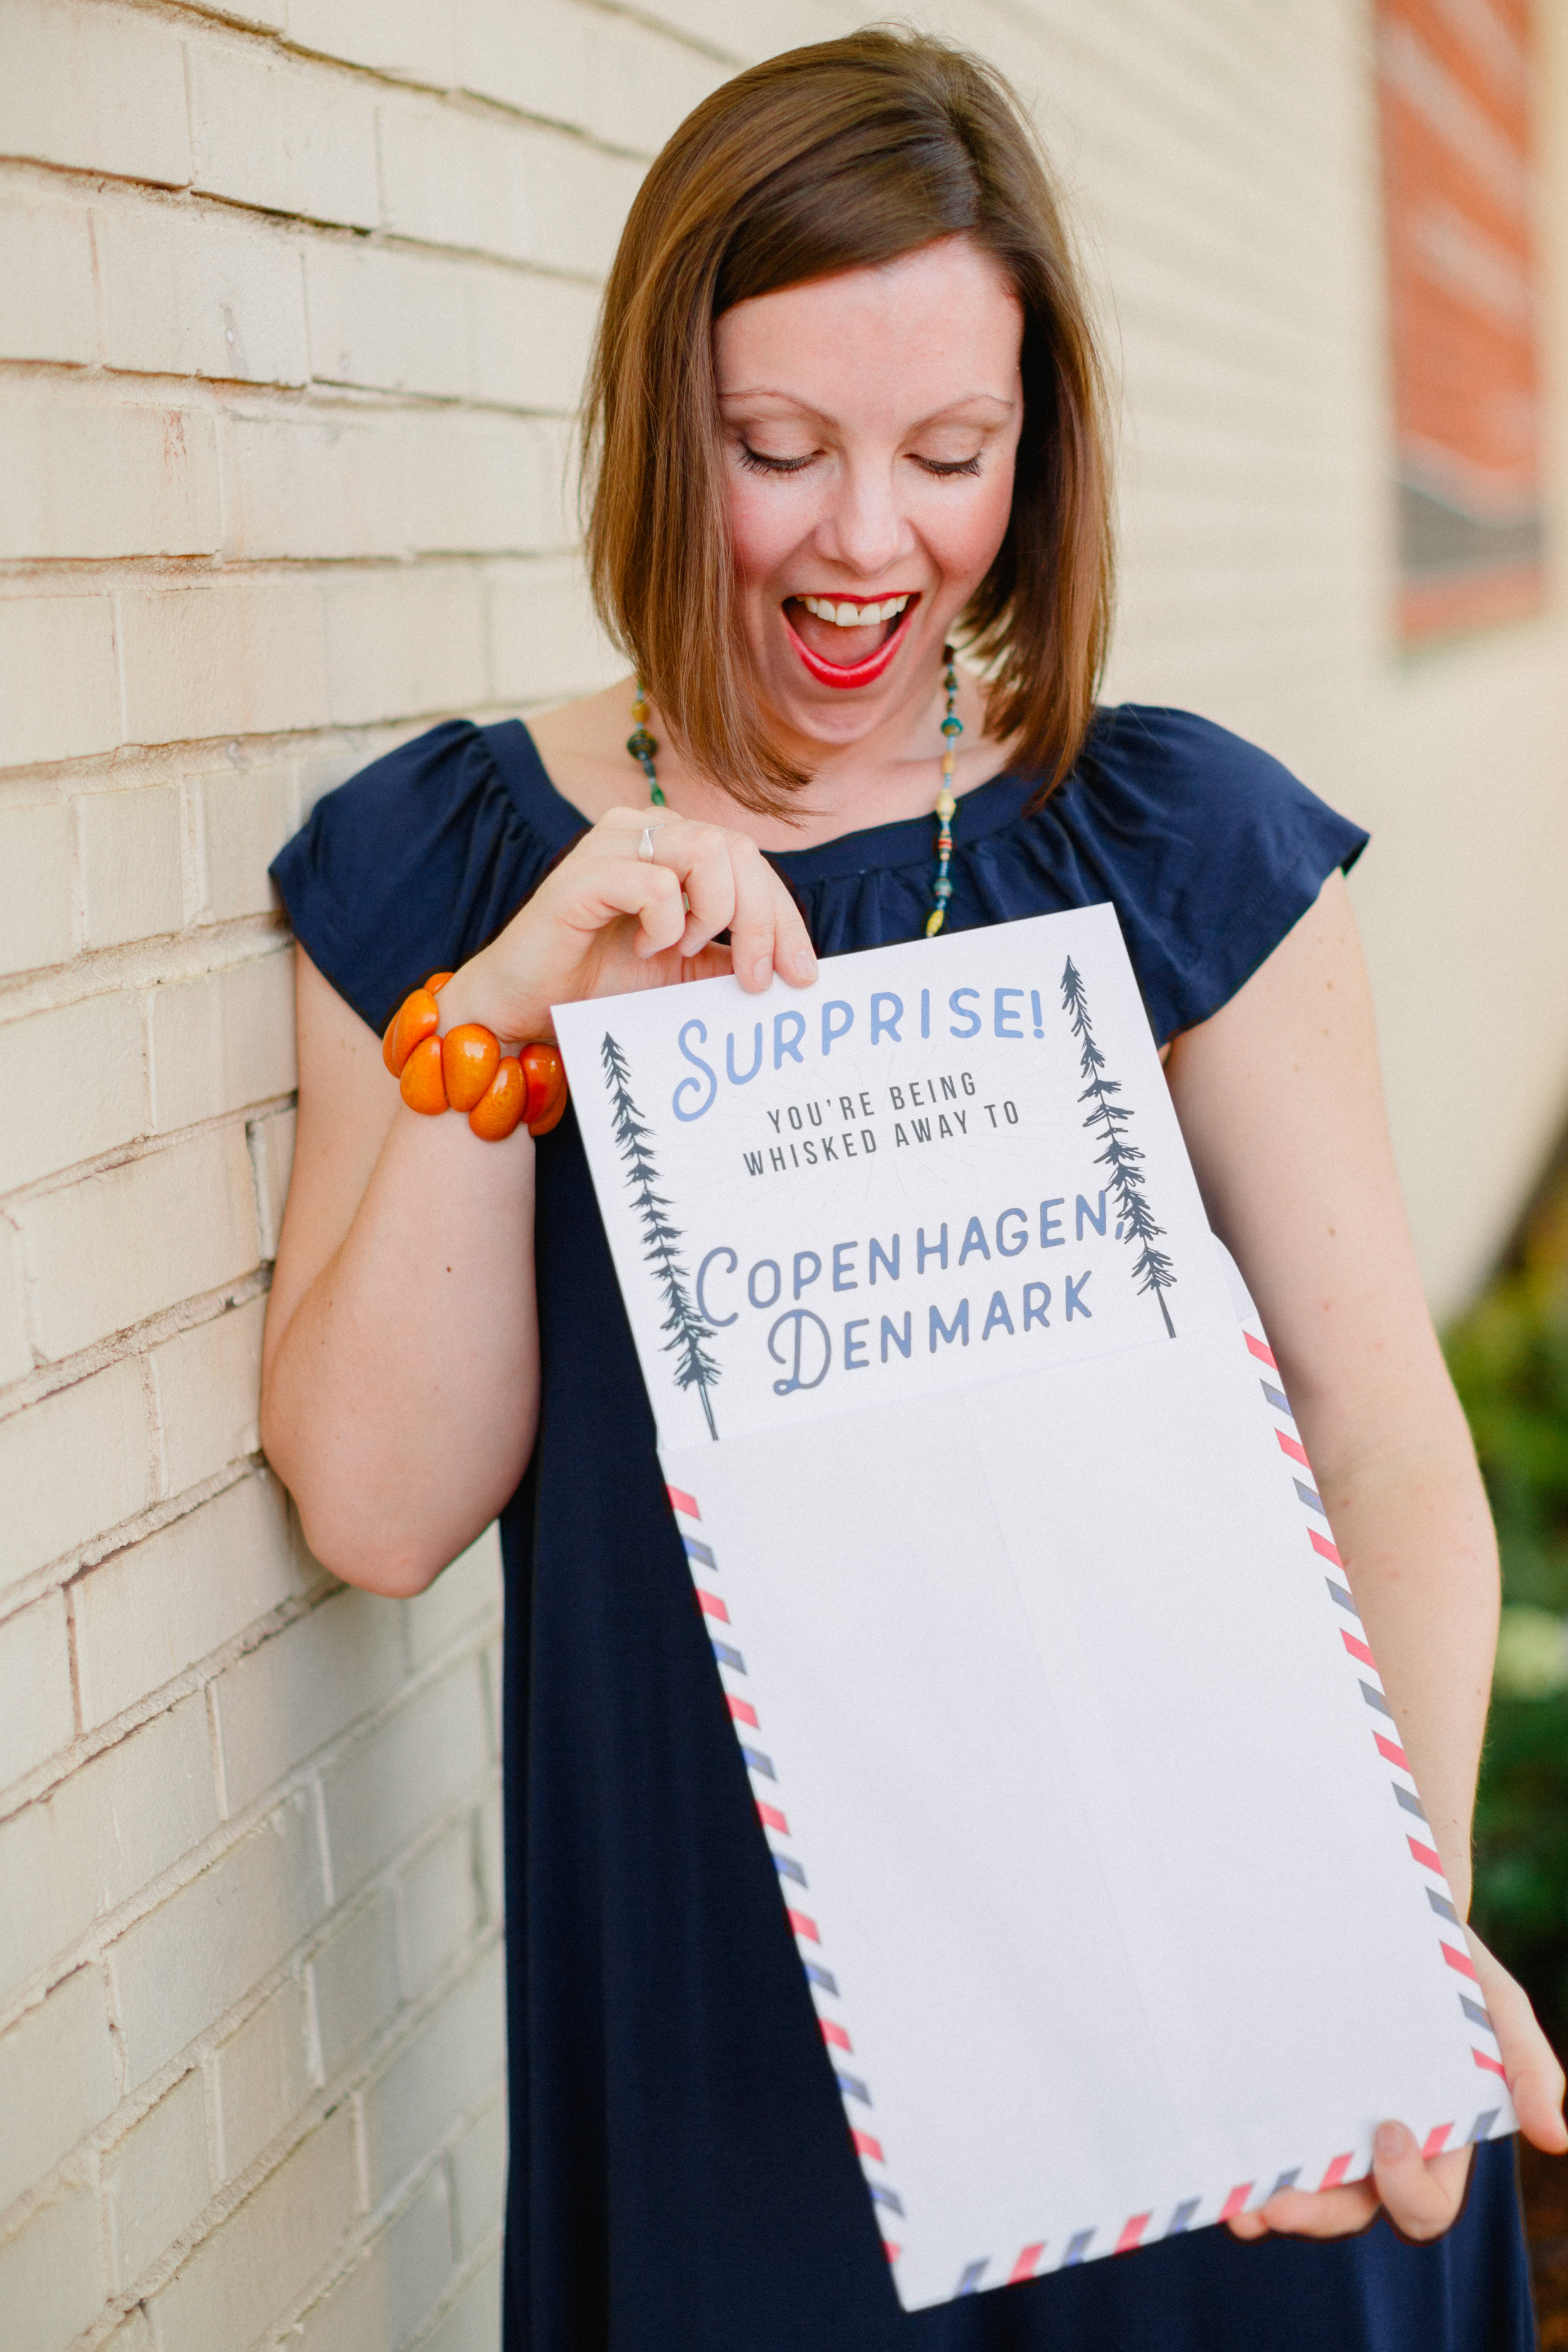 Hi! I'm Charlotte McGhee, Founder of Whisked Away Surprise Travel. - Whisked Away was born after over 20 years of planning travel (surprise and otherwise!) for friends and family who hated spending hours researching on big box travel sites. They wanted to speak to a person, someone they trusted, who had traveled and could help them out.Travel is meant to expand your horizons and help you grow. It is also meant to be fantastically amazing. When you book through Whisked Away, you get curated travel with a twist:You won't know where you are going until a week before you leave.Are you ready to get Whisked Away?